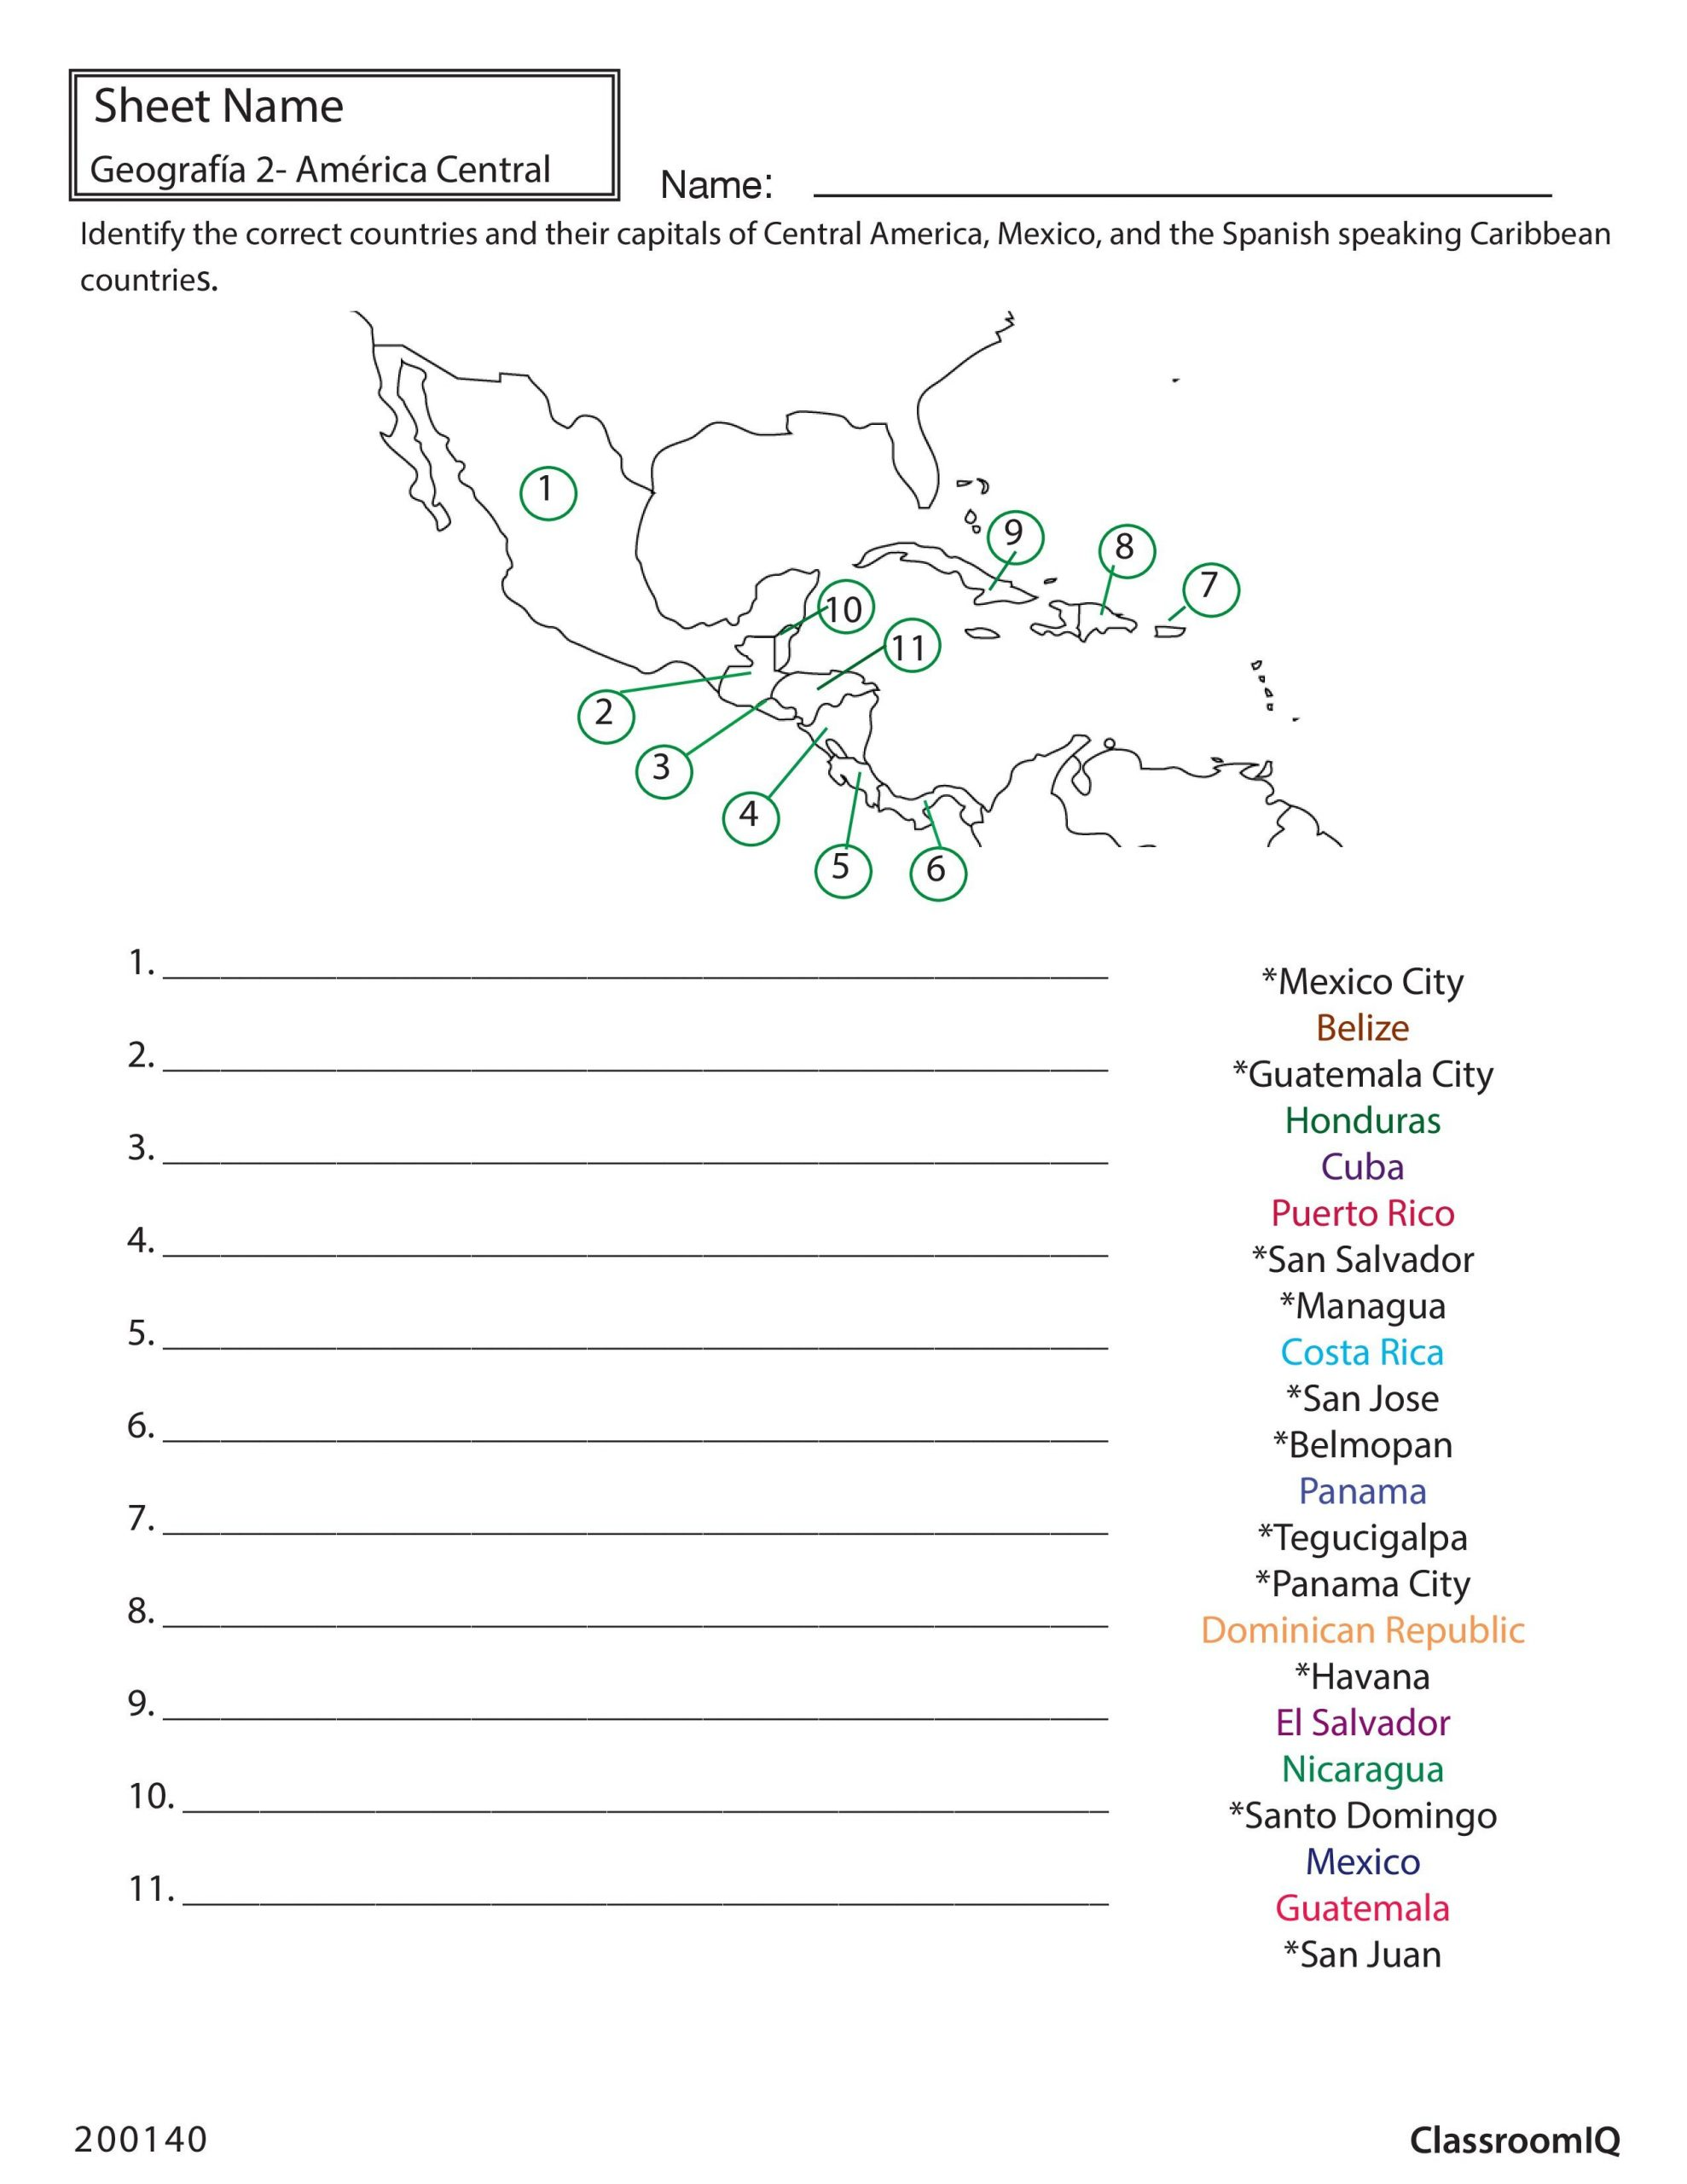 State and Capital Quiz Printable Identify Countries and Capitals Spanishworksheet